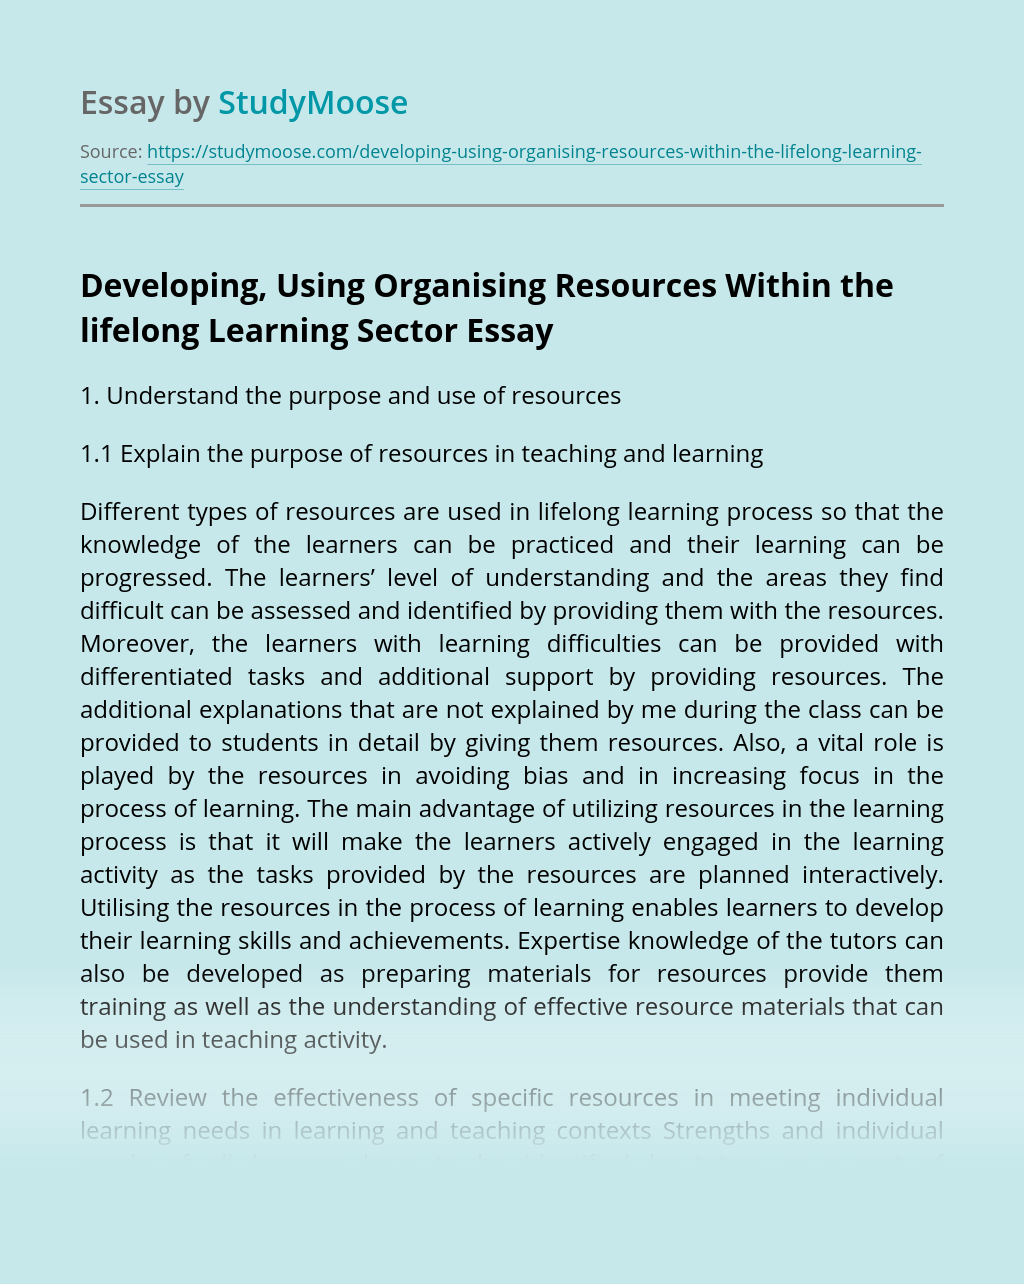 Developing, Using Organising Resources Within the lifelong Learning Sector